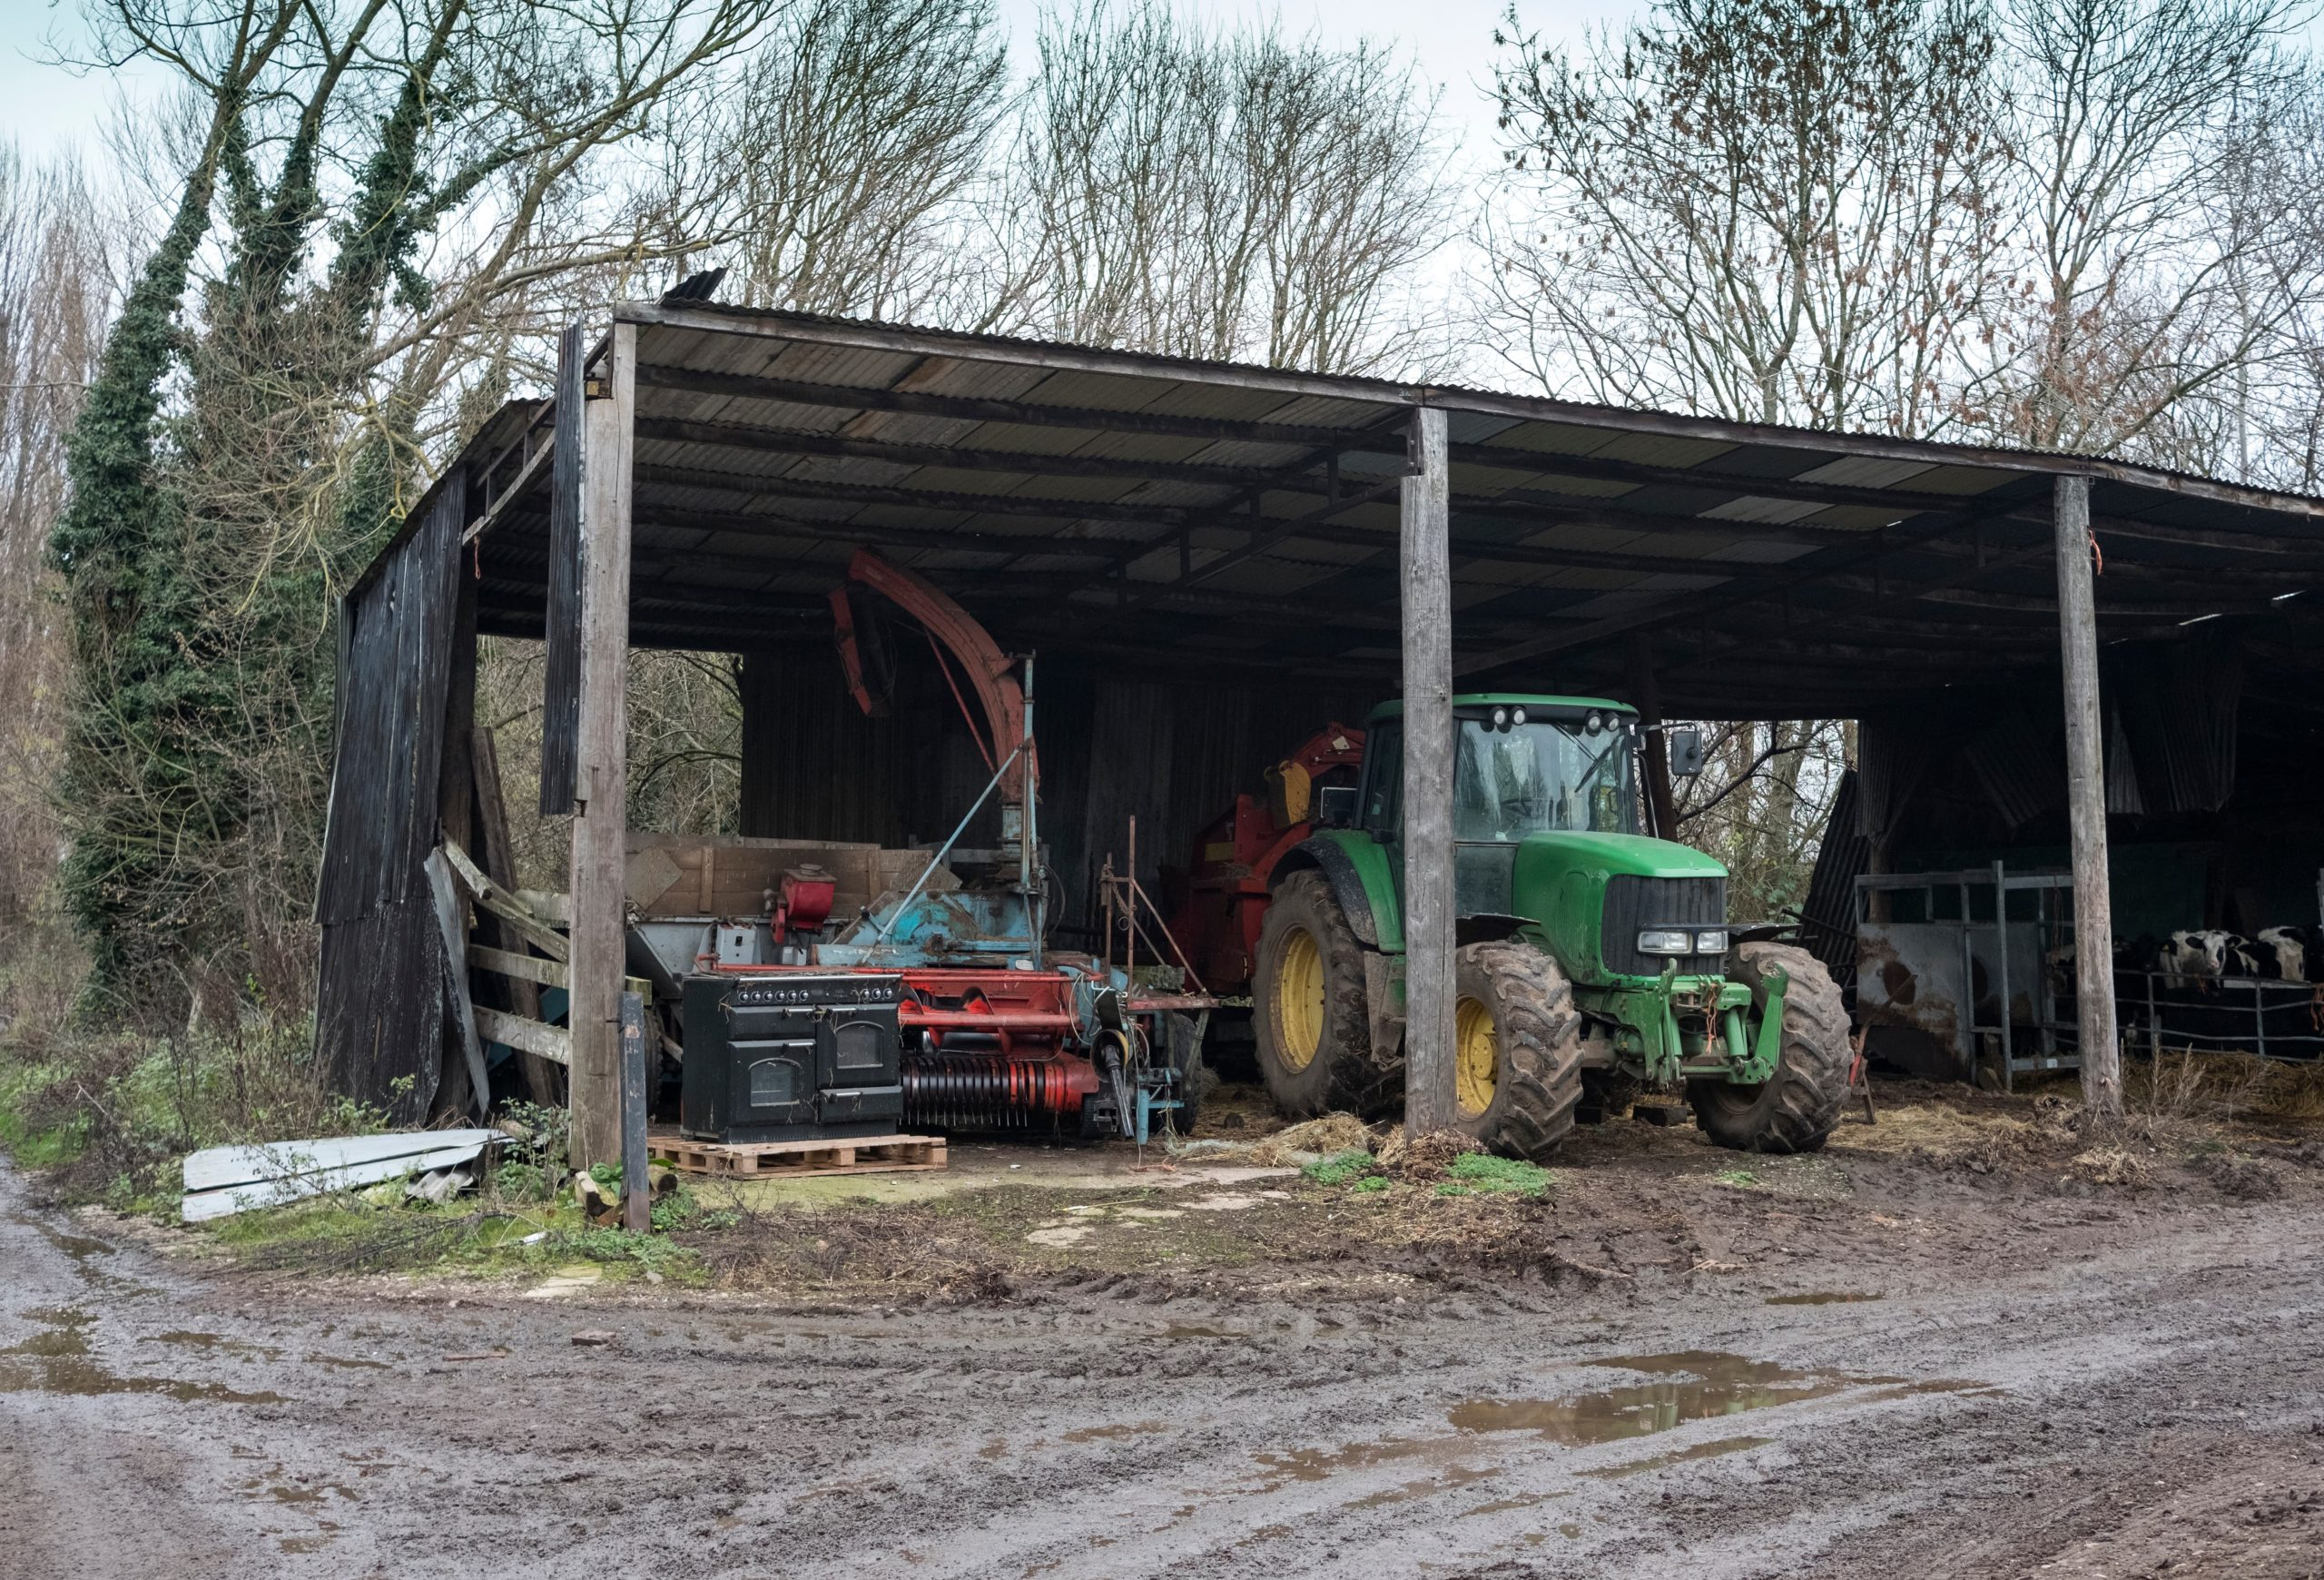 Tractor in old farm shed - TB Hub